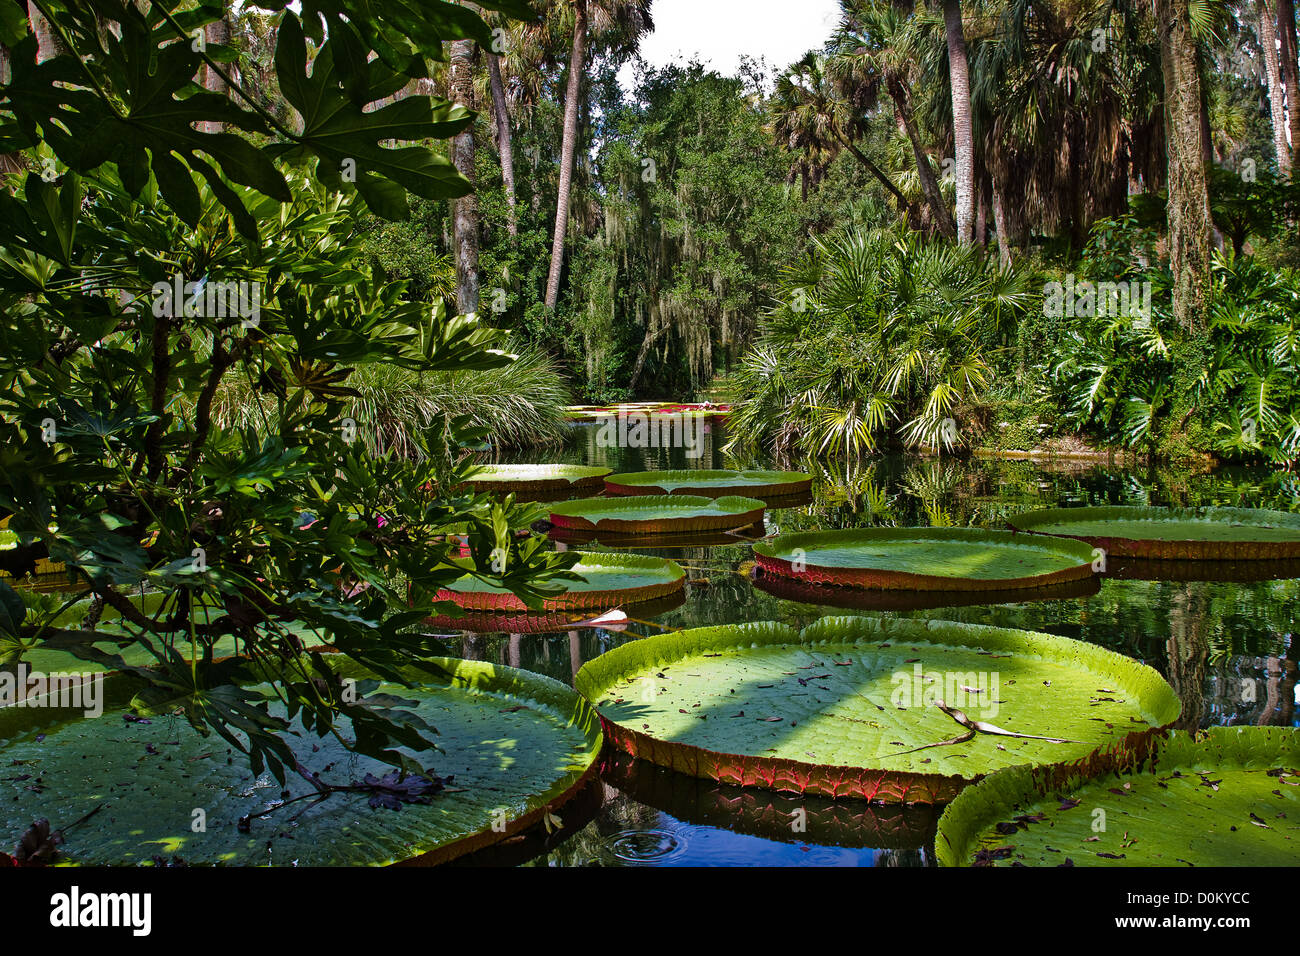 Huge Lily Pads at Bok Tower. - Stock Image